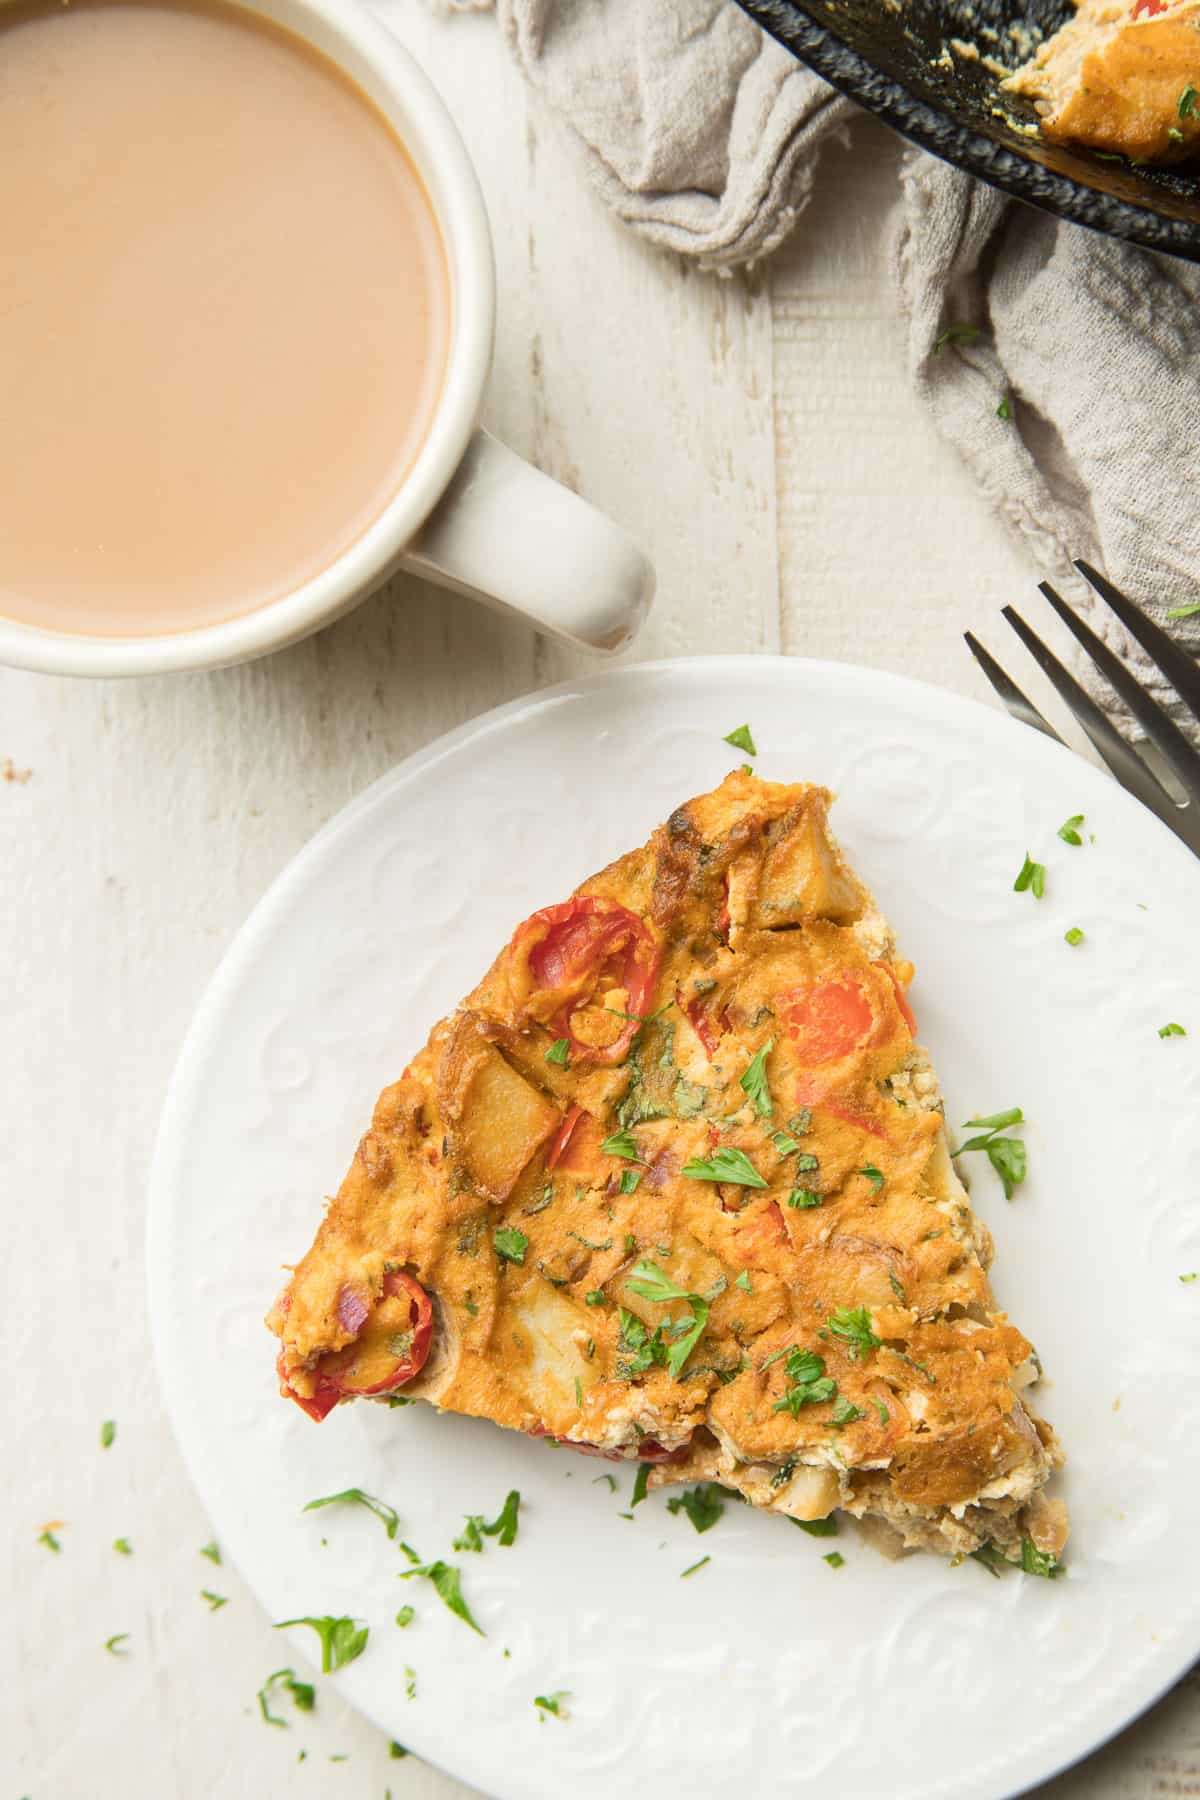 White wooden surface set with skillet, coffee cup, and slice of Vegan Frittata on a plate.